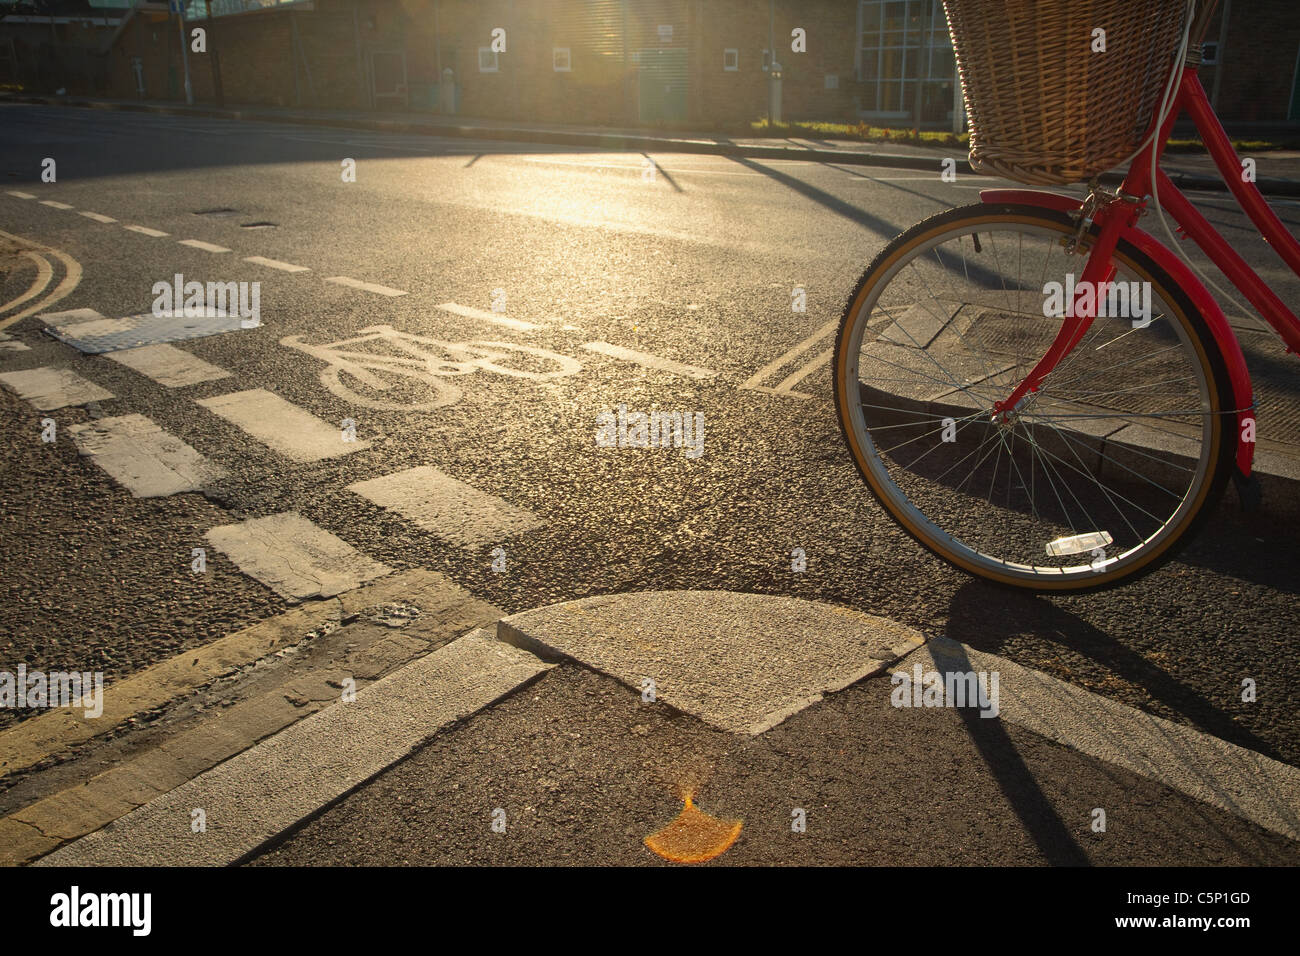 Road with cycle path and bicycle - Stock Image